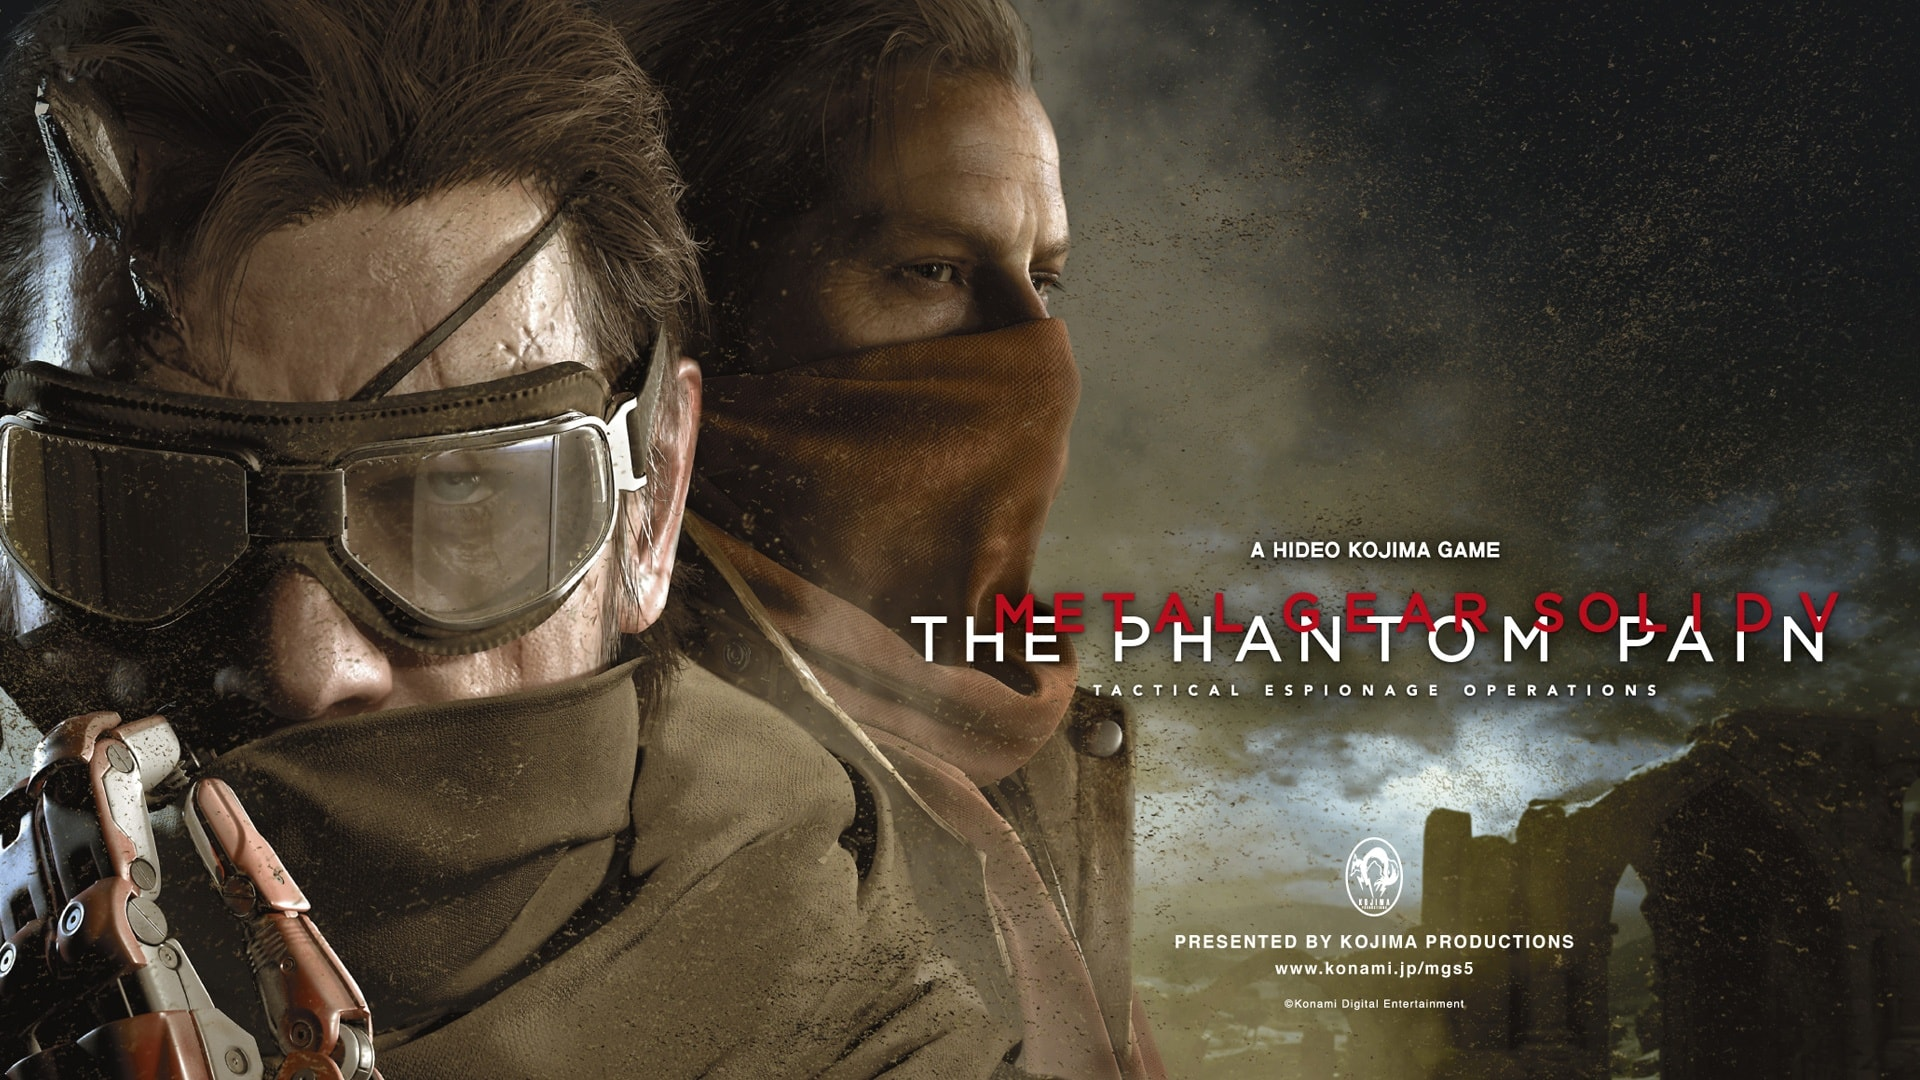 Metal Gear Solid V: The Phantom Pain widescreen wallpapers